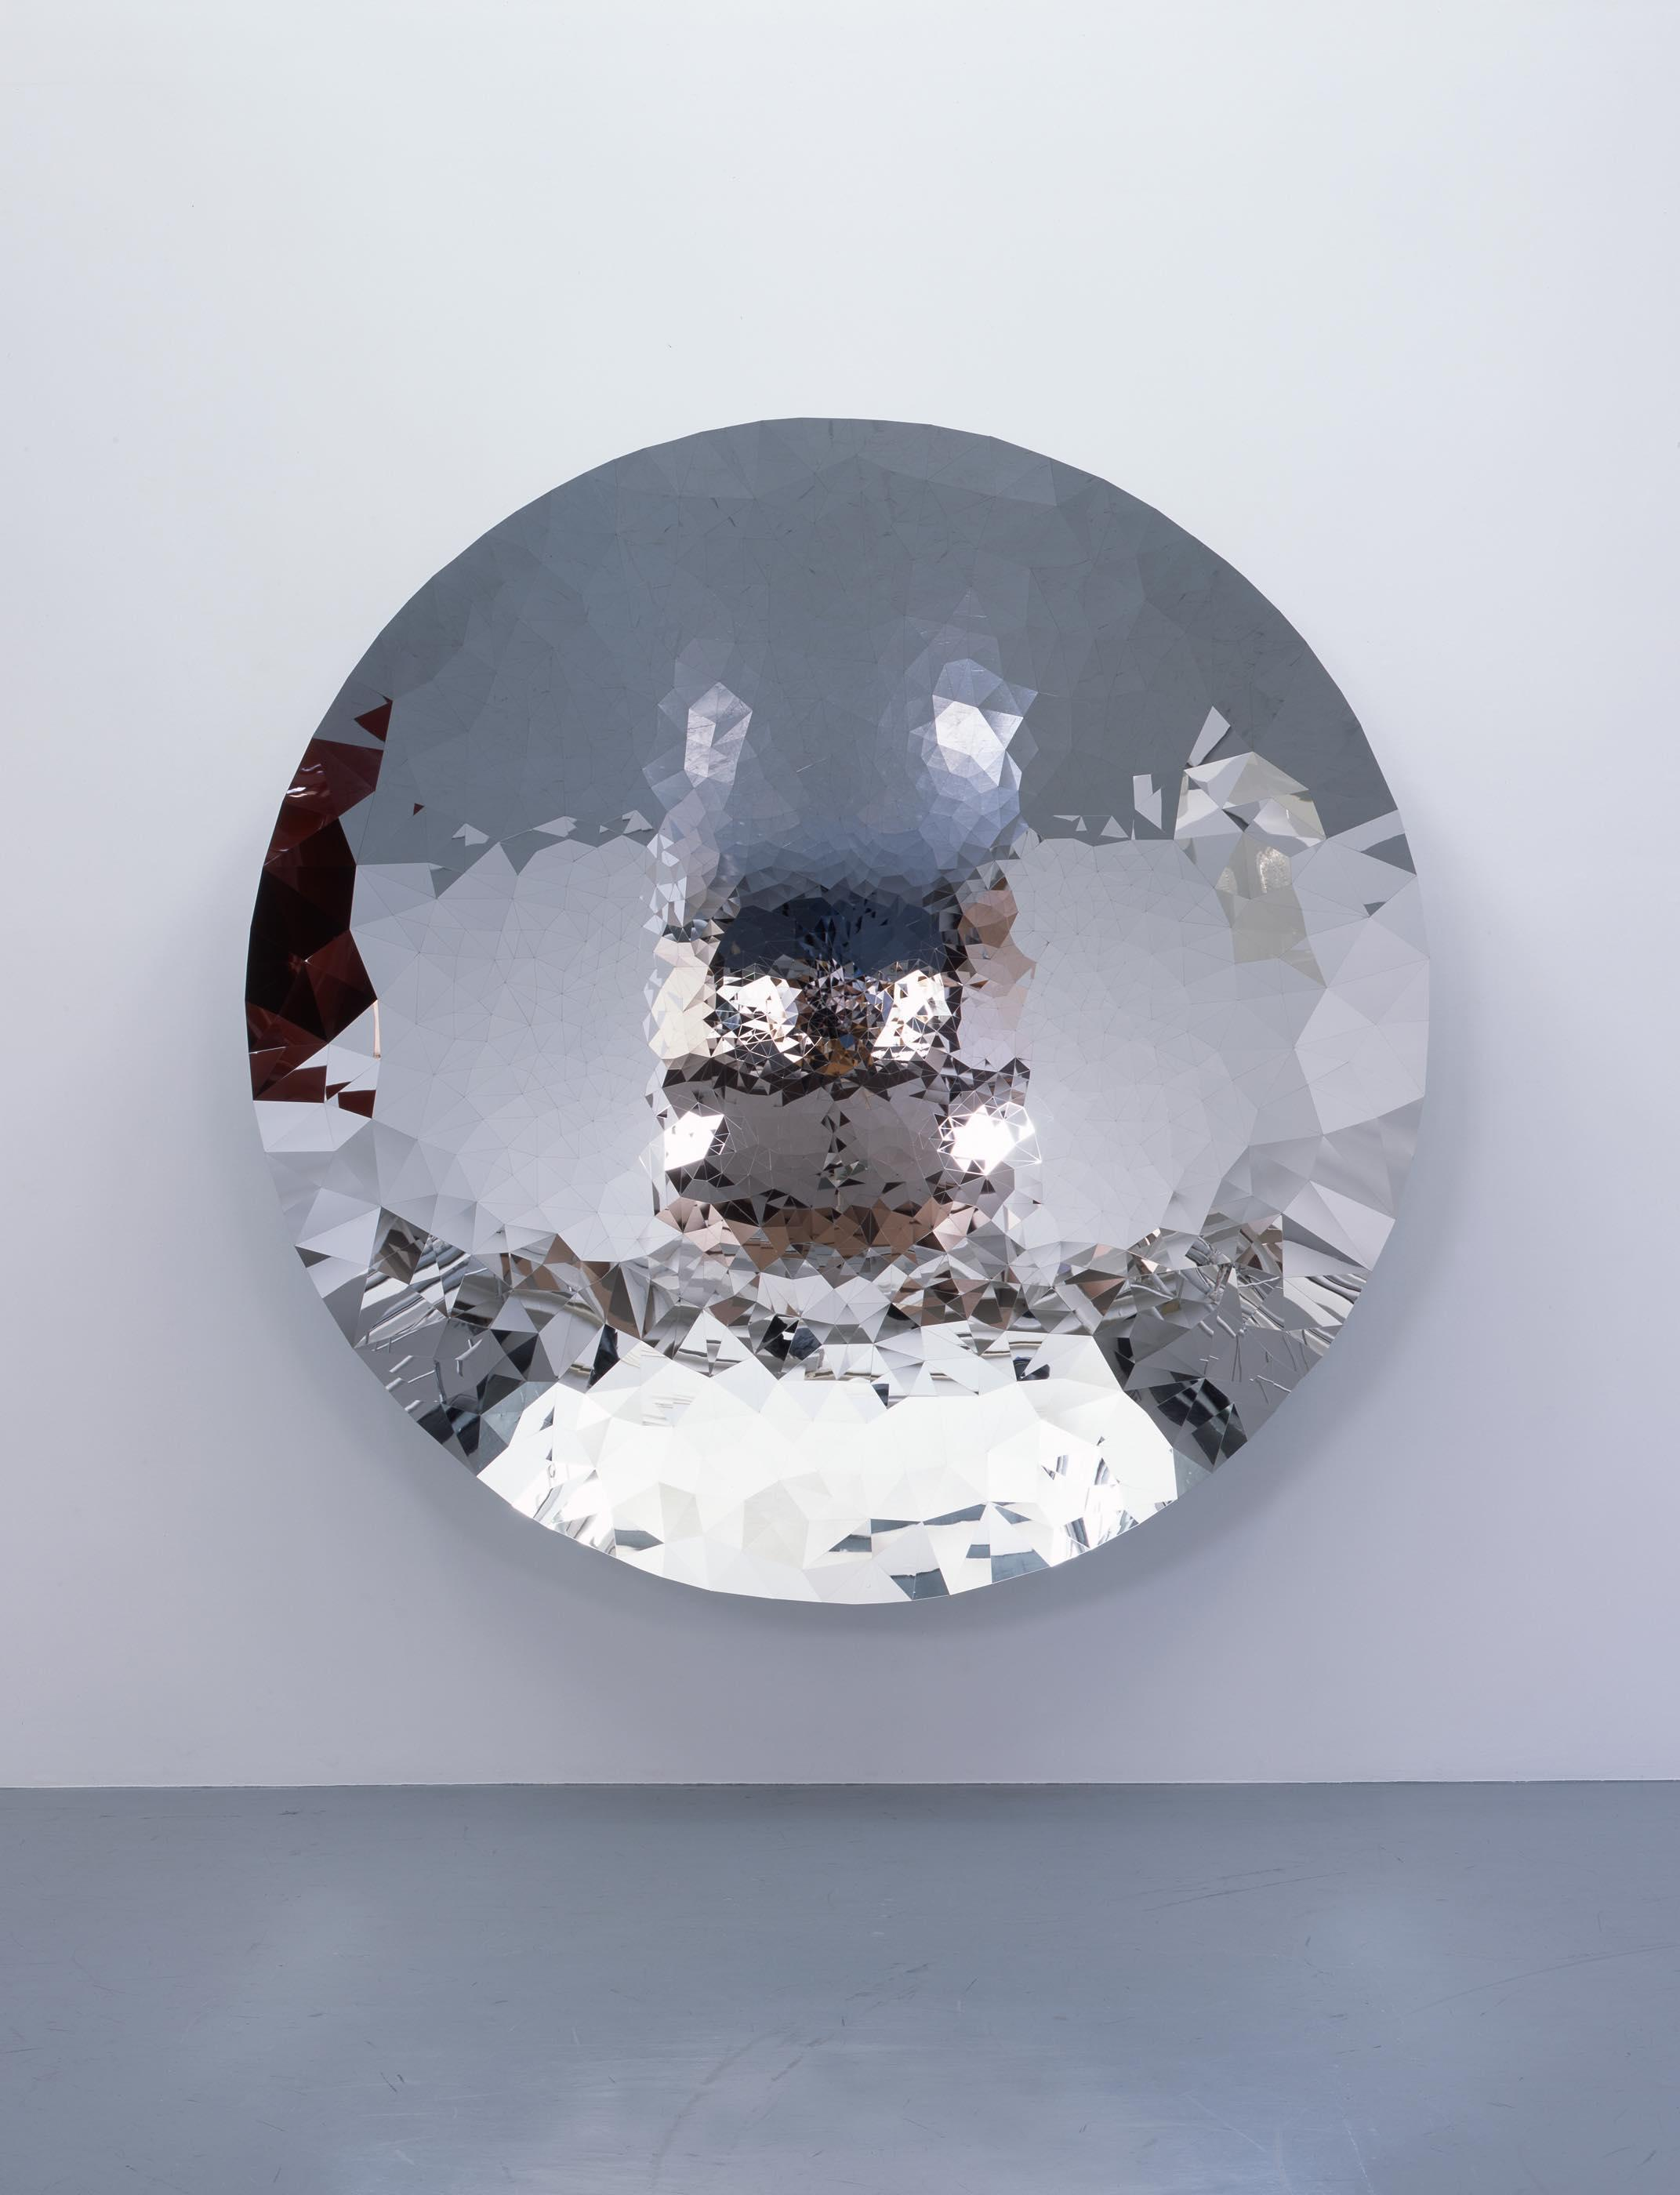 Untitled, 2010, Stainless Steel, 230 x 230 x 44 cm, 撮影:木奥恵三